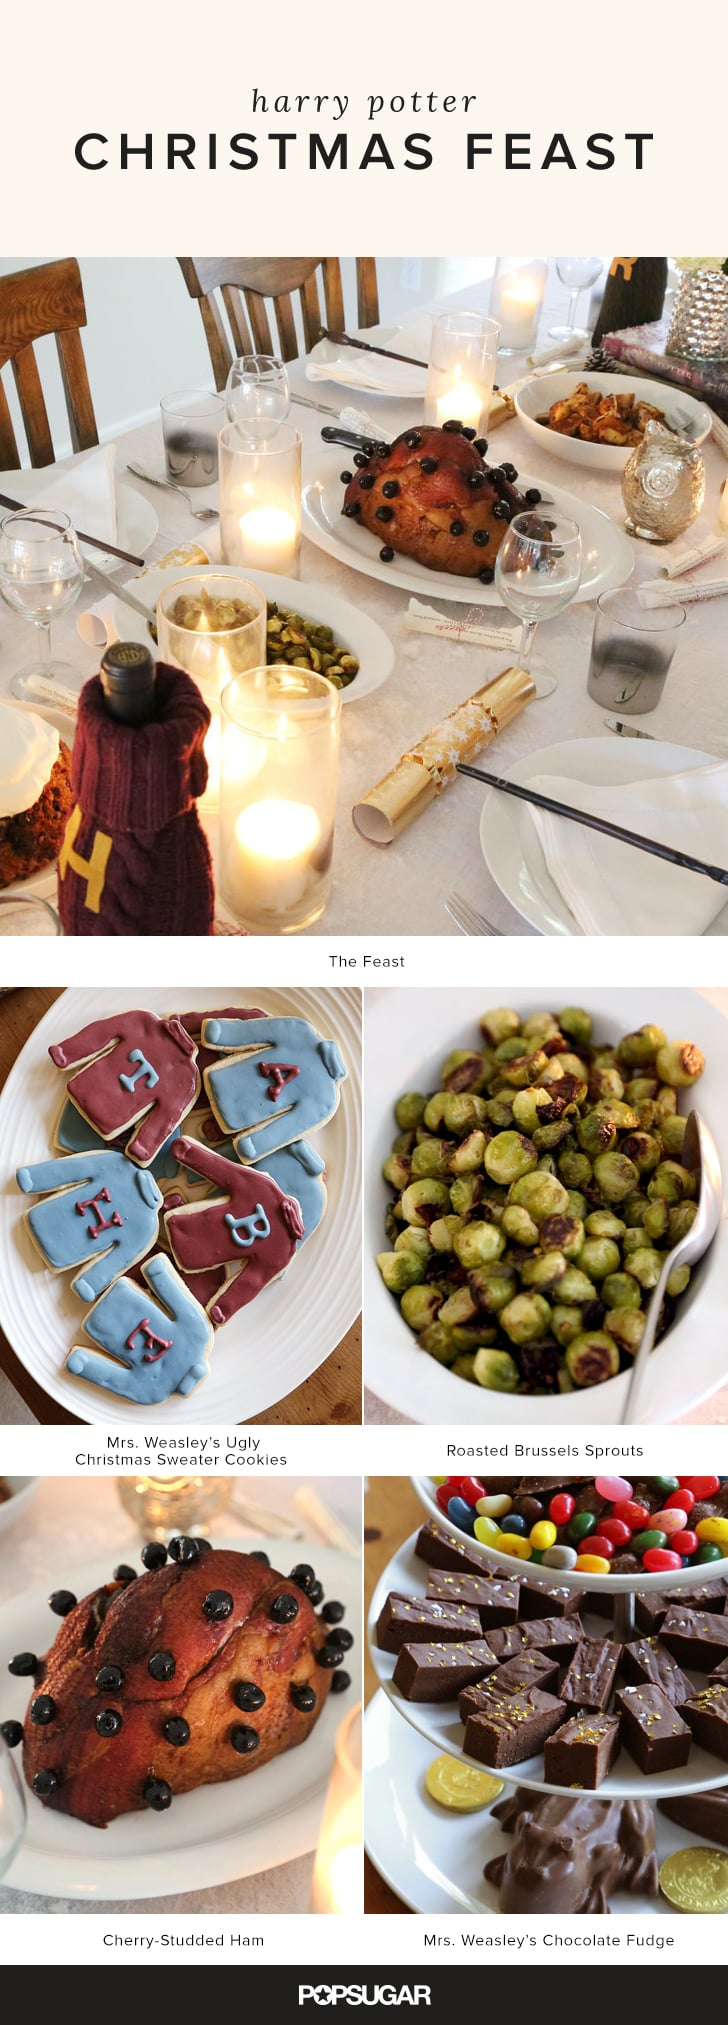 Christmas feast harry potter